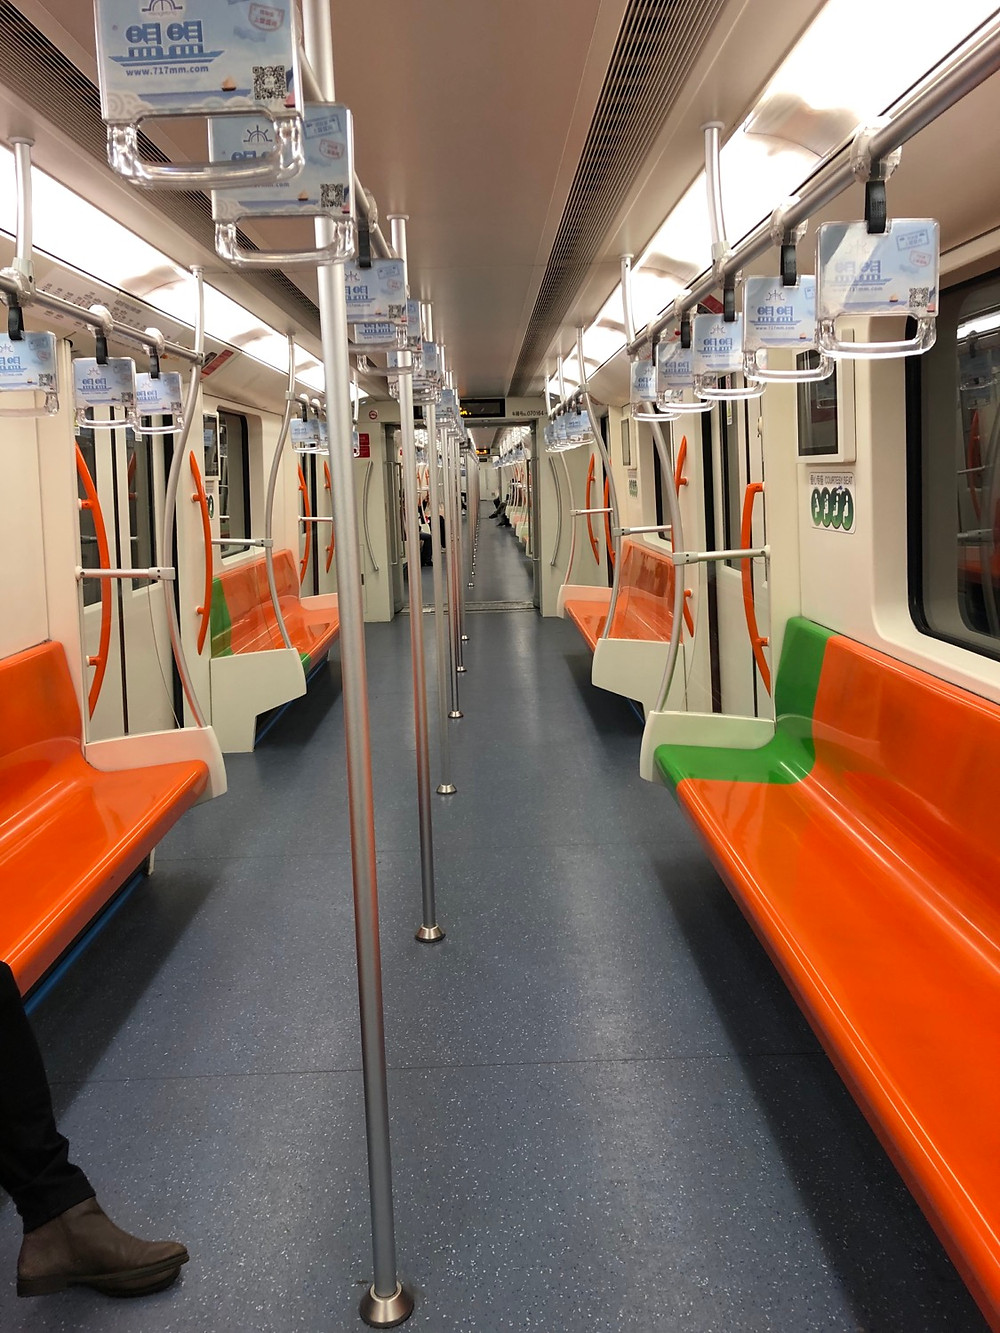 Line 7 on the Shanghai metro was mind blowingly empty at noon on January 28th